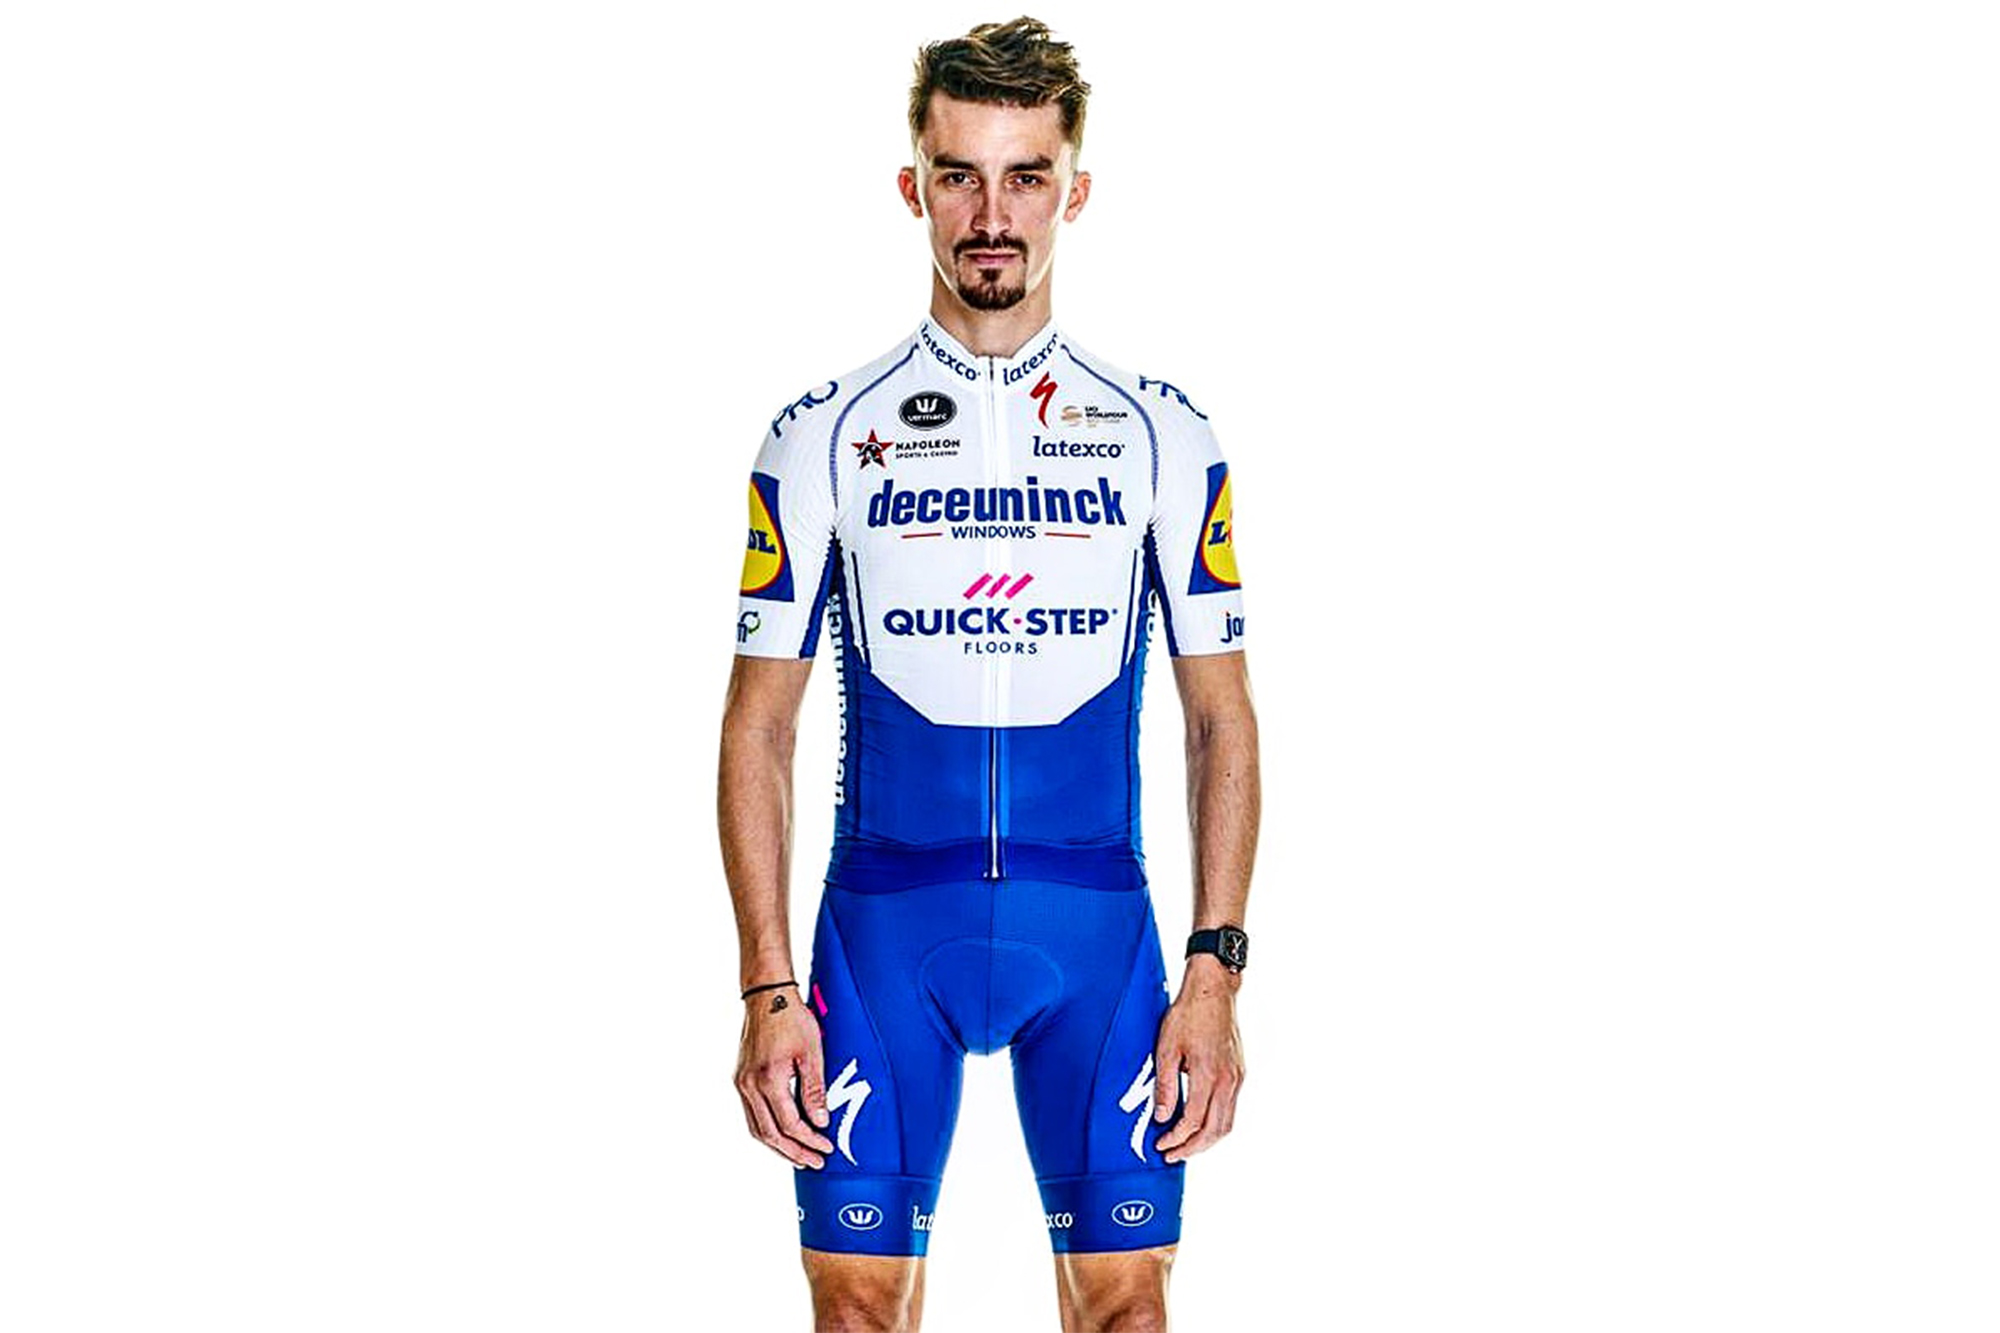 Deceuninck-Quick-Step reveal new kit and new sponsor